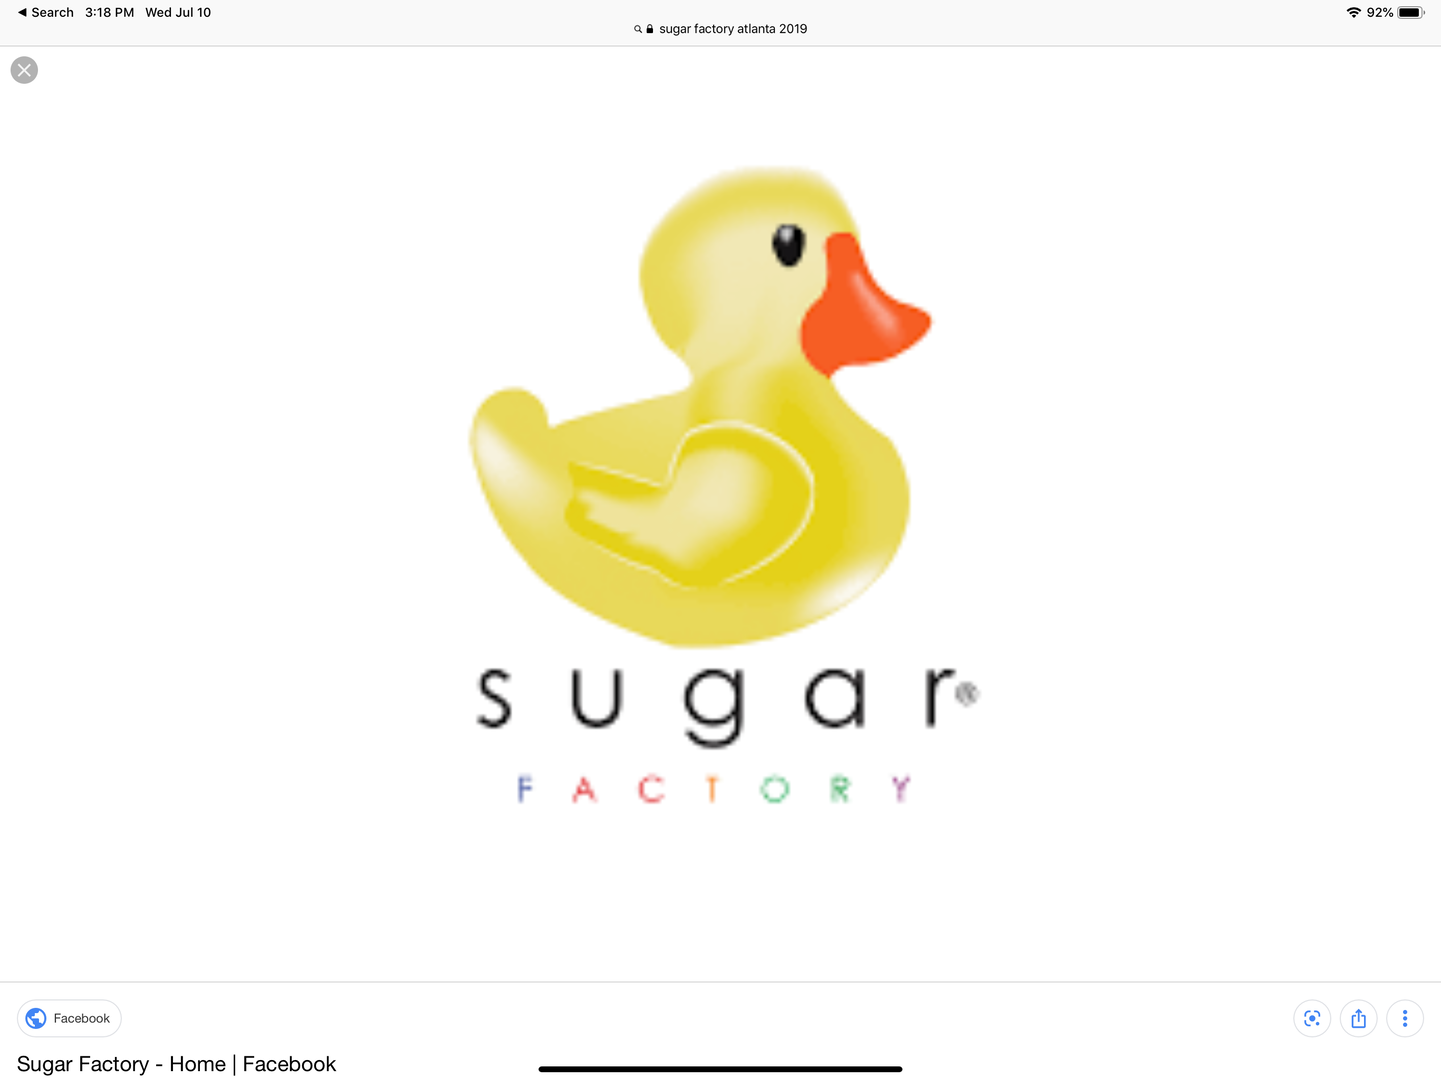 Sugar Factory Atlanta